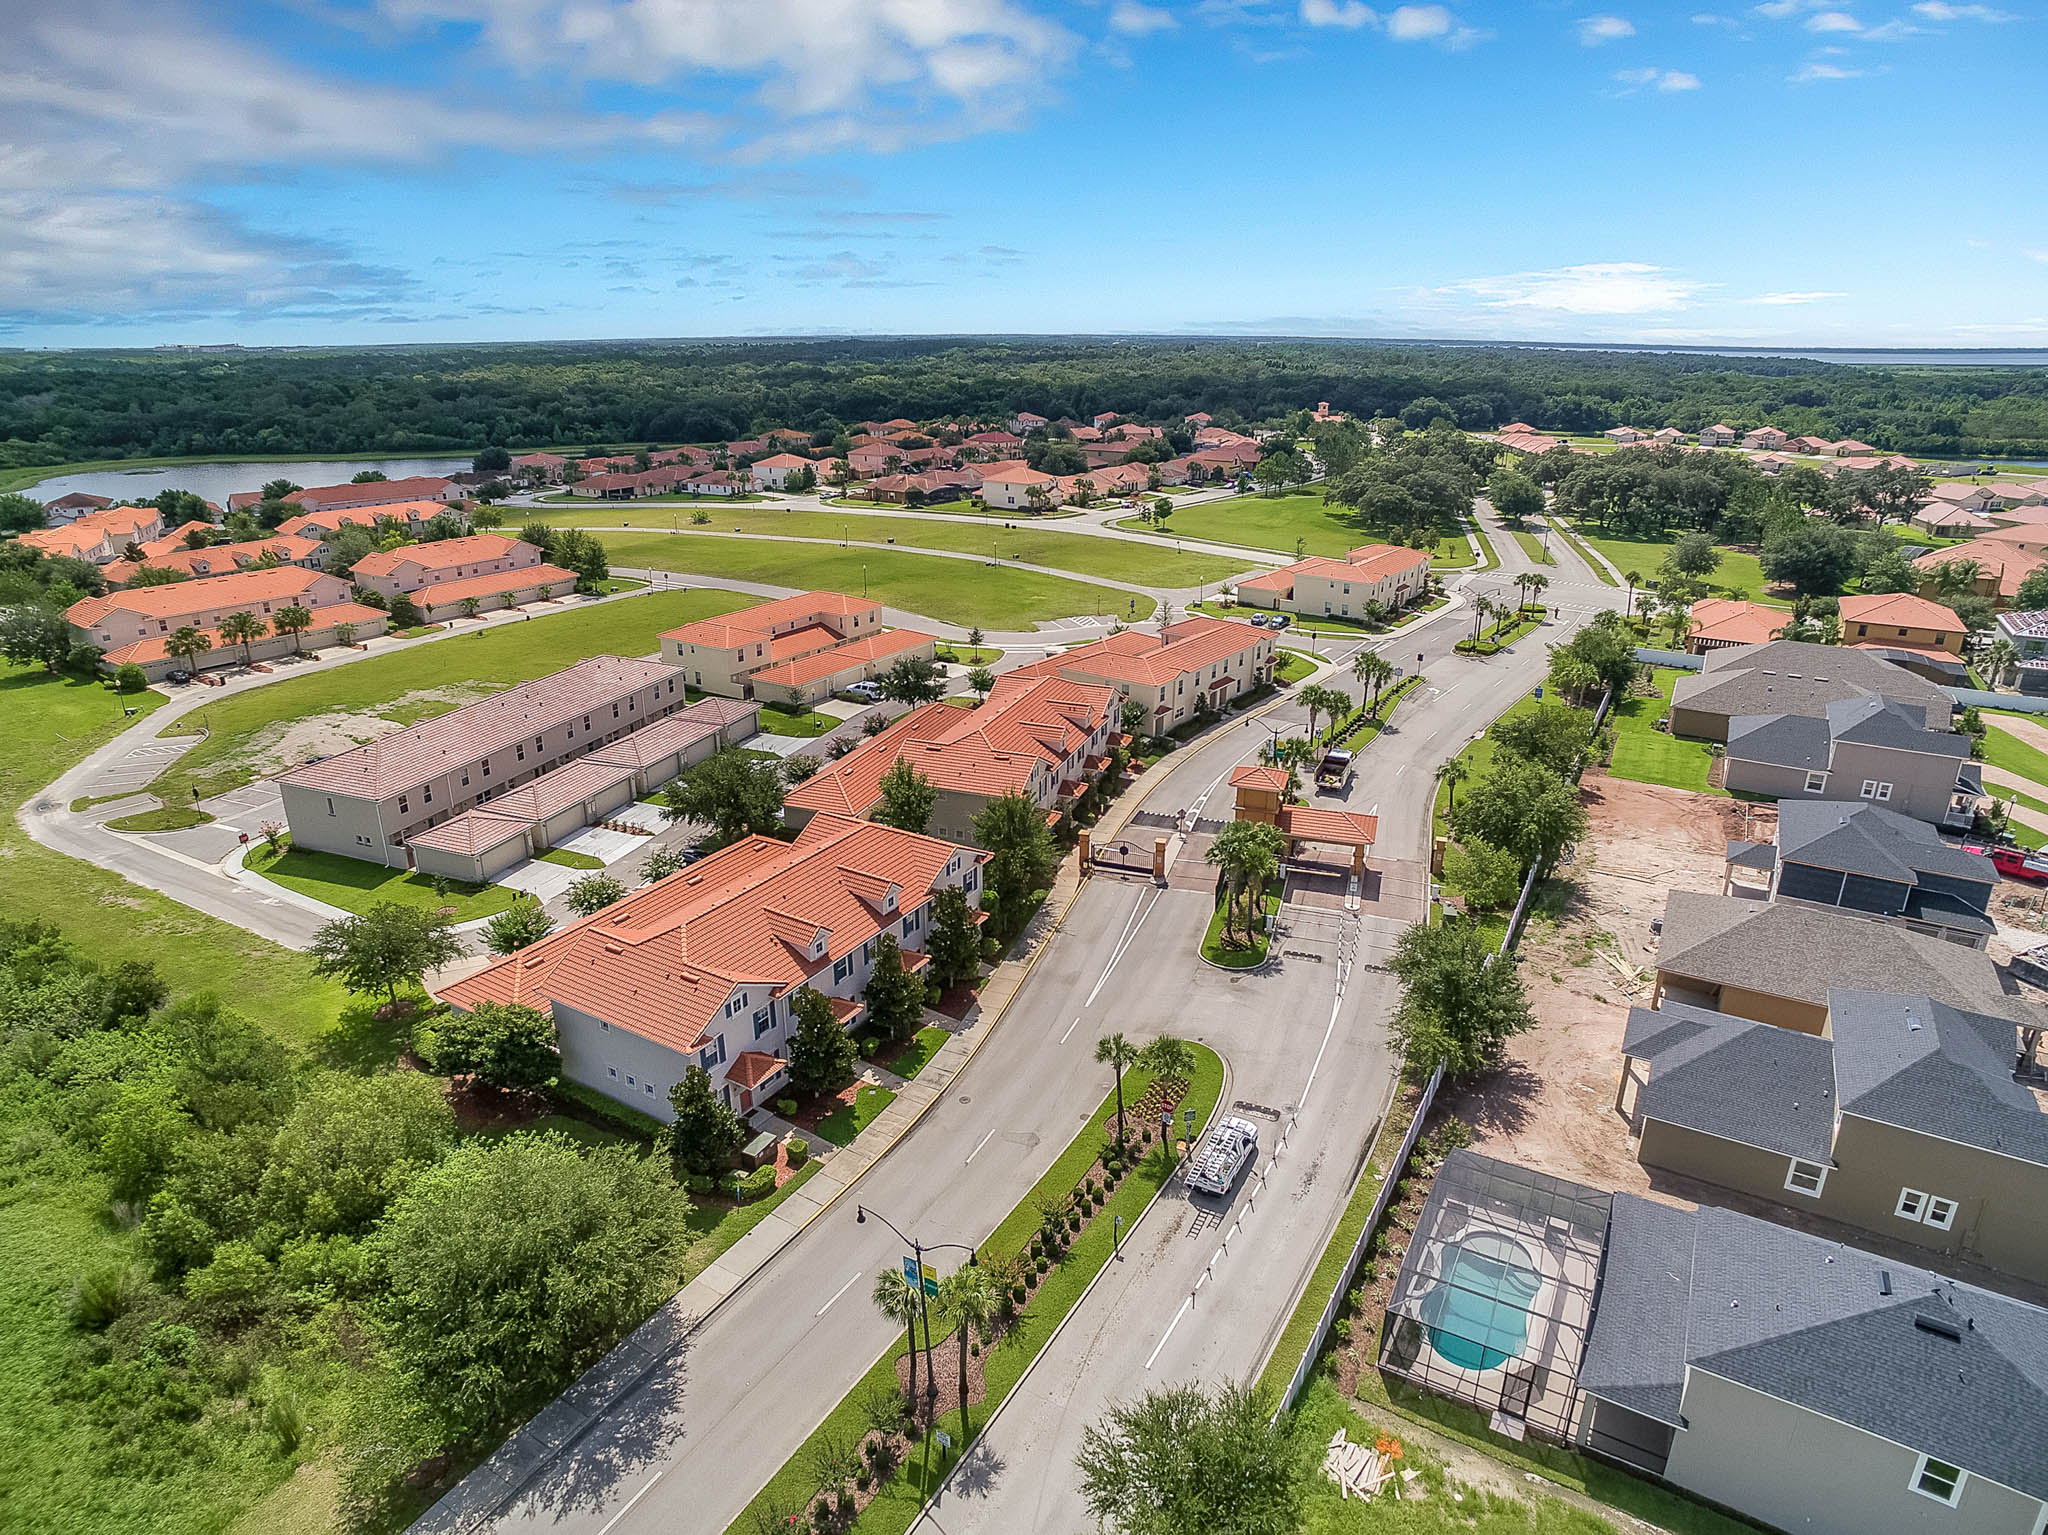 Rey Homes Town Homes and New Homes Community in Kissimmee Florida Aerial View